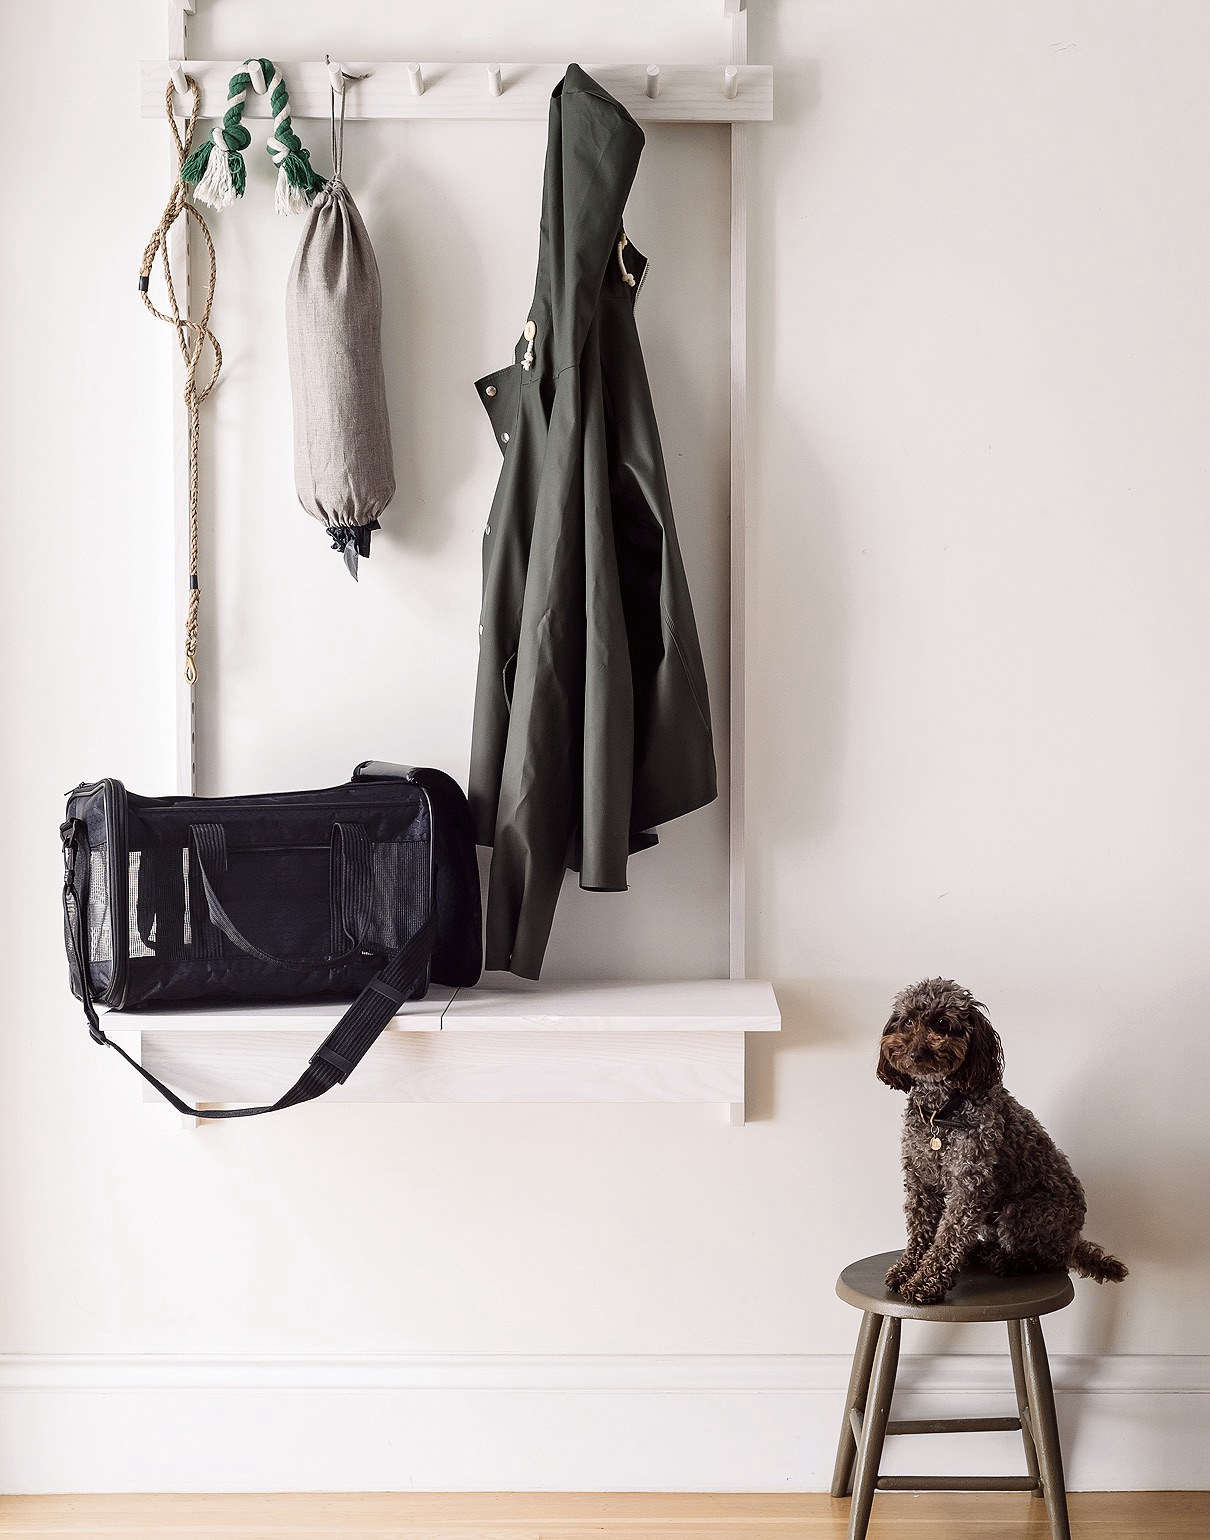 Leash in Entryway in Organized Home Book, Image by Matthew Williams